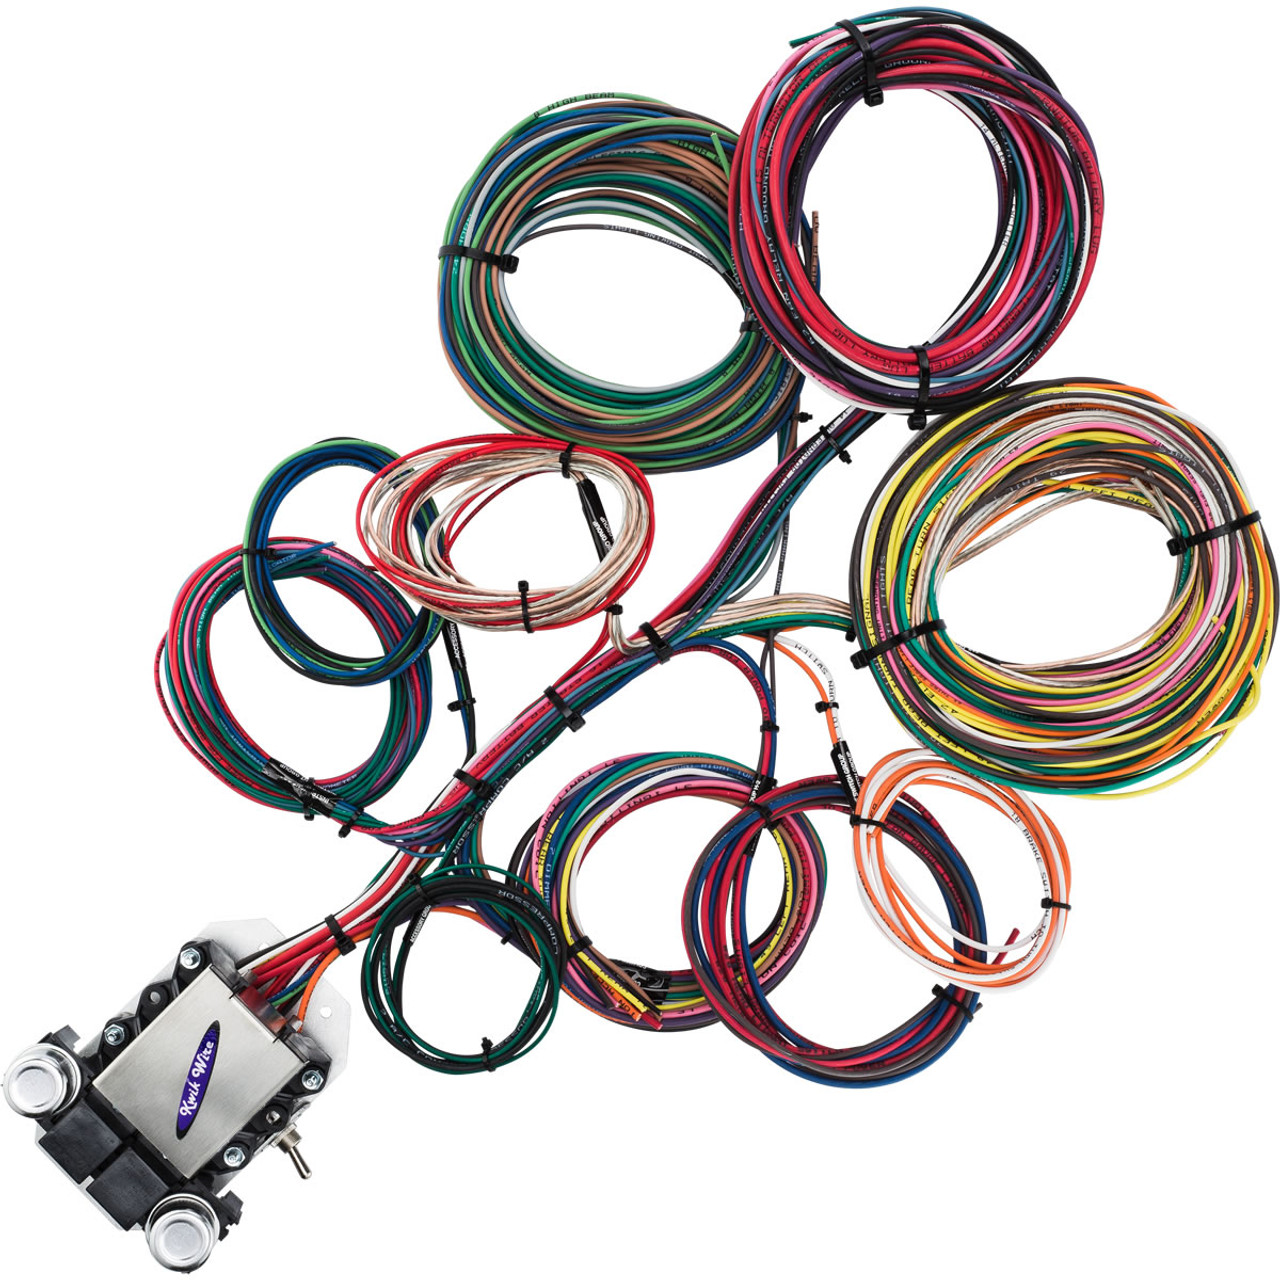 14 circuit wire harness kwikwire com electrify your ride rh kwikwire com